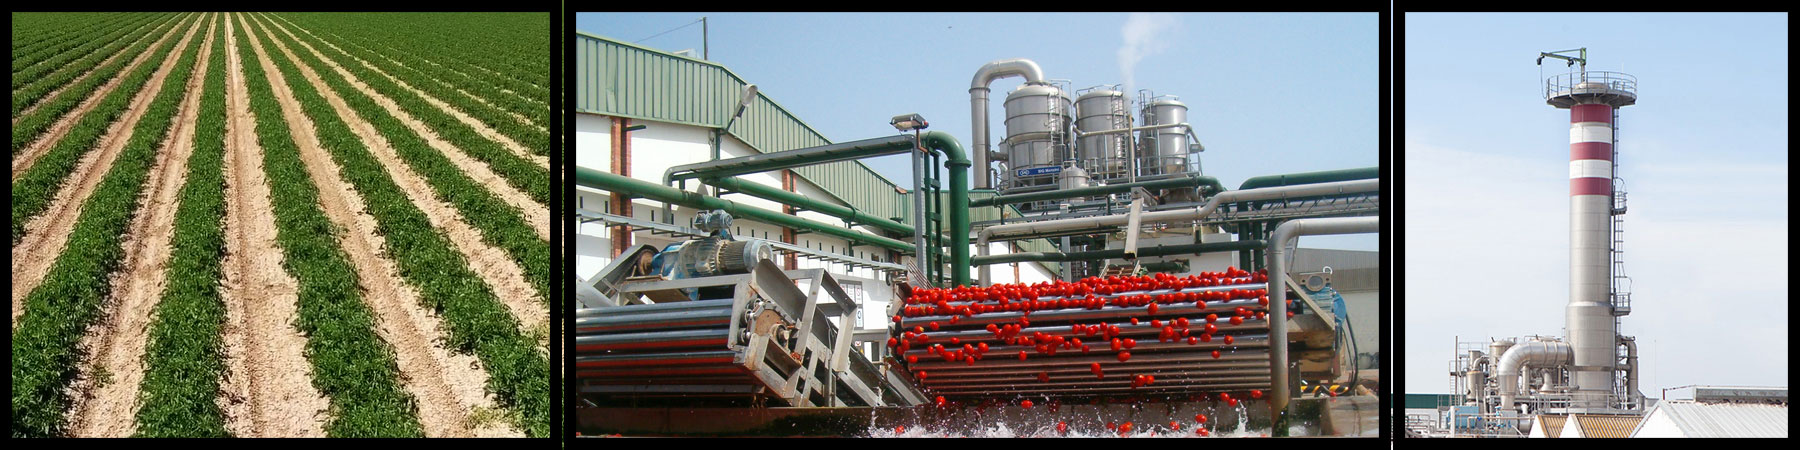 Tomato Concentrate - Tomato Cultivation - Marismas de Lebrija